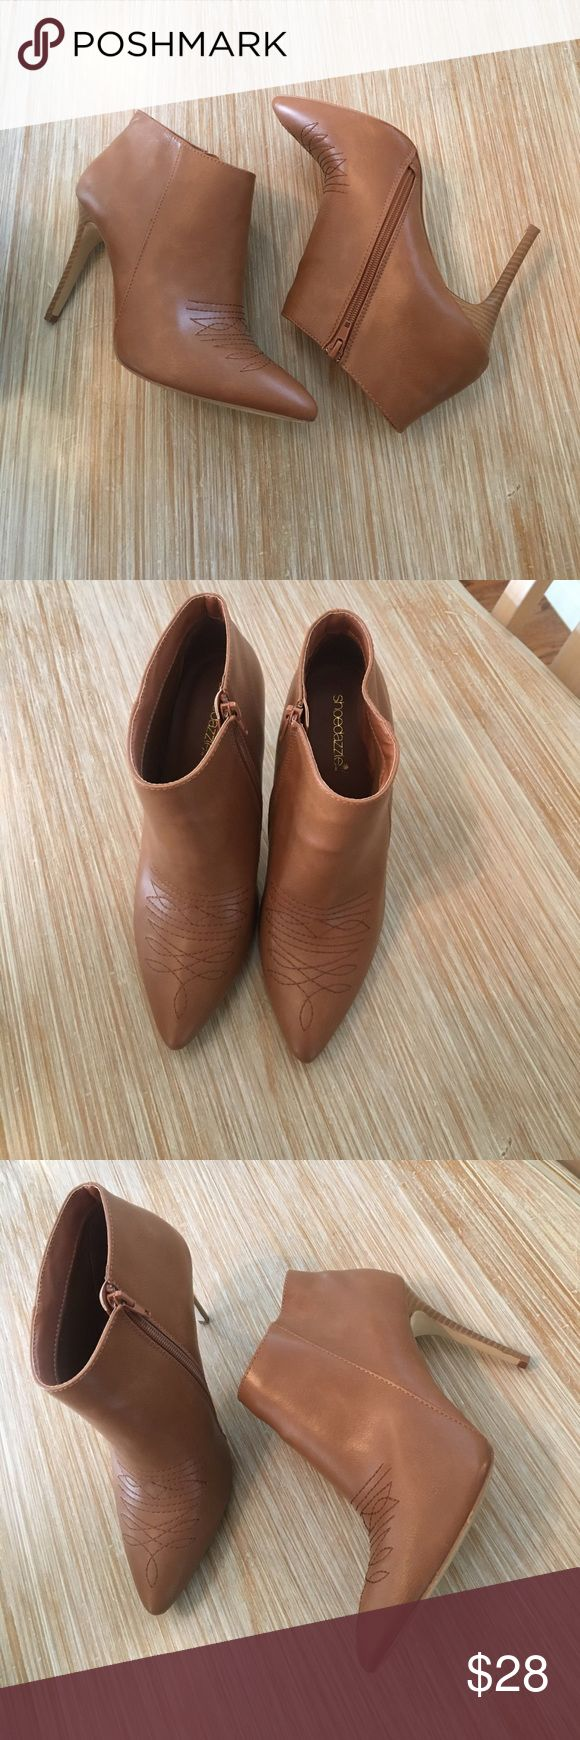 Shoe dazzle booties Size 8.5 heeled booties. In great condition worn a few times Shoe Dazzle Shoes Ankle Boots & Booties